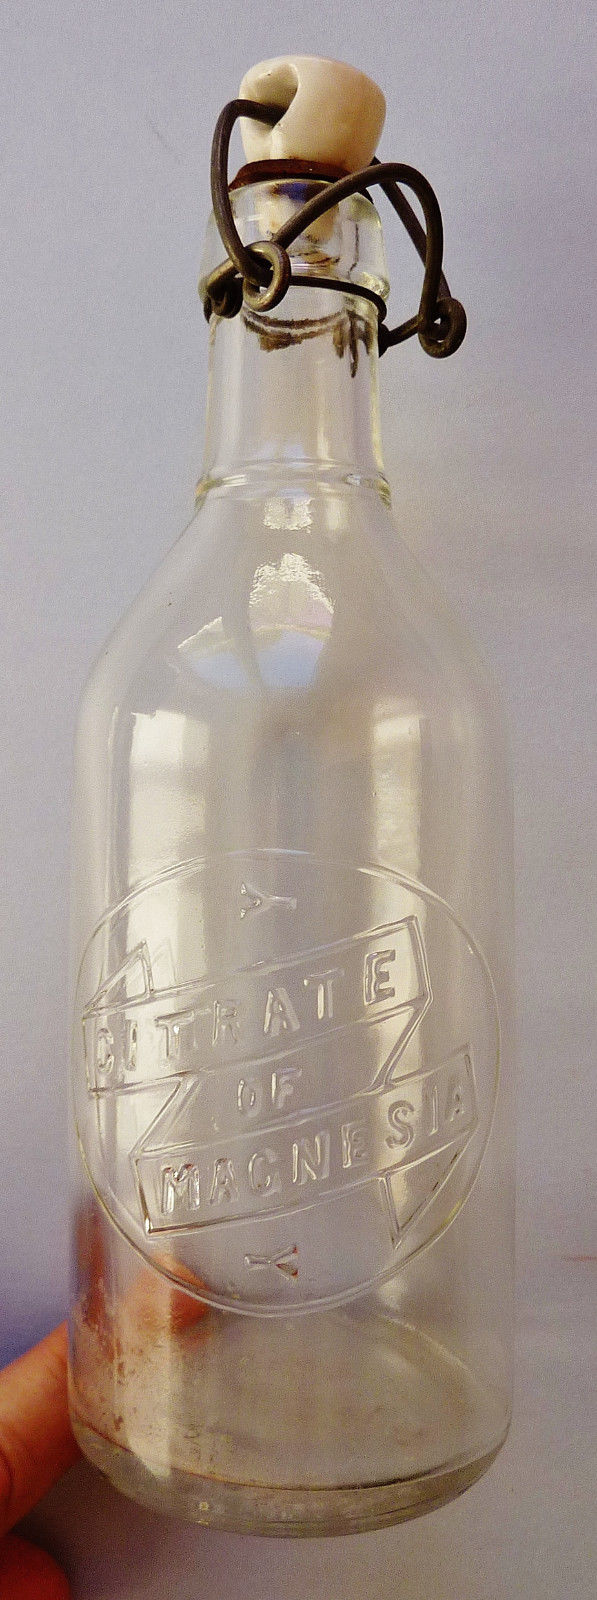 VINTAGE ~ OWENS ~ CITRATE OF MAGNESIA ~ BOTTLE w/ PORCELAIN STOPPER ~ 8.5